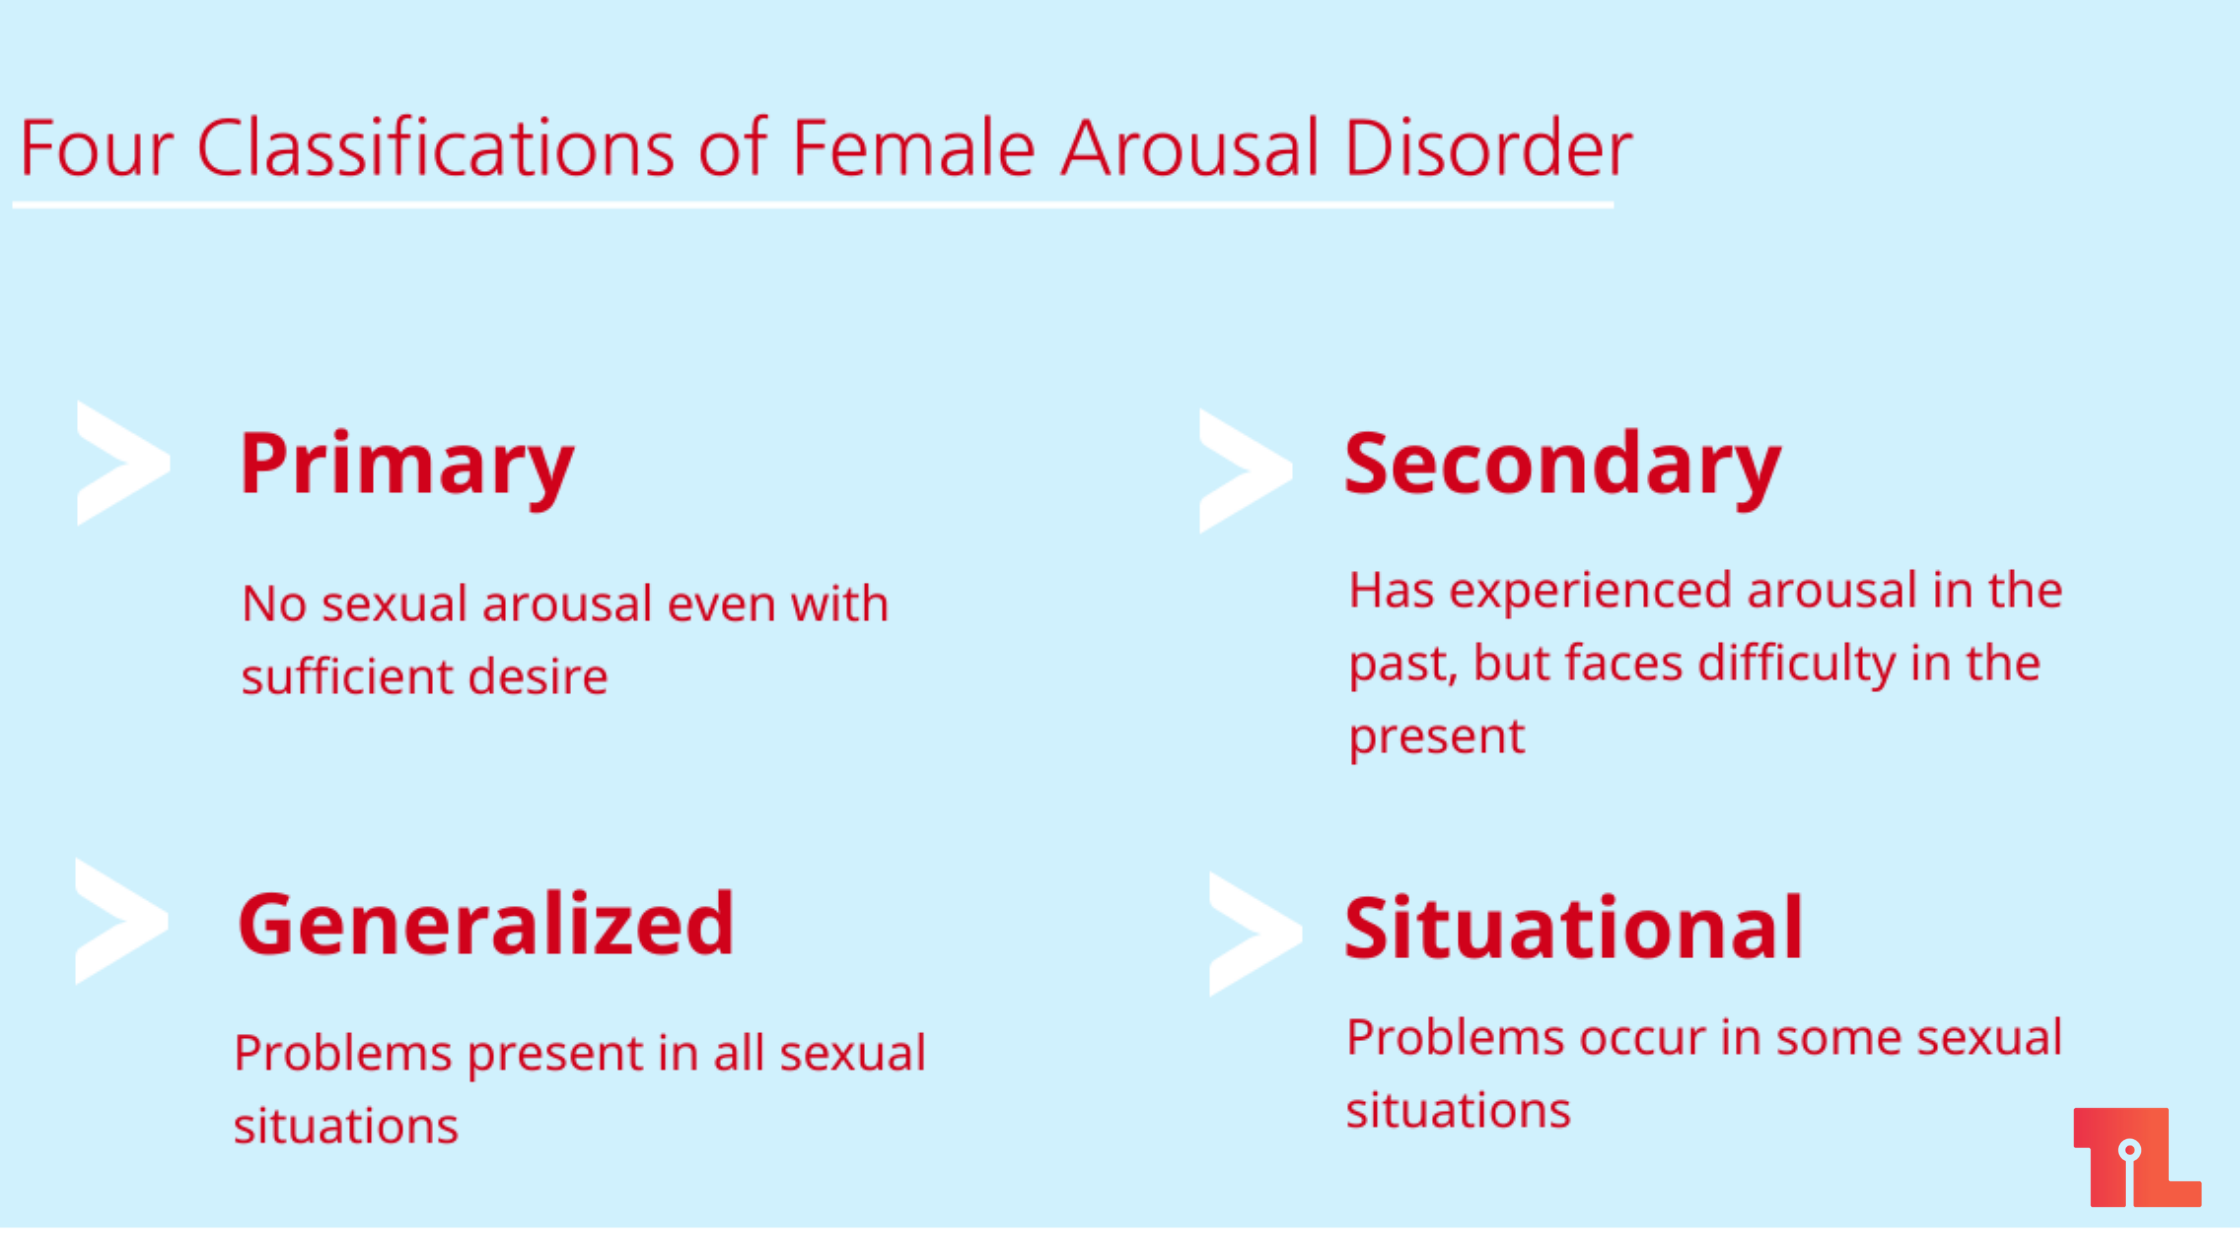 Four classification of female arousal disorder female sexual arousal disorder Female arousal disorder Female sexual arousal issues